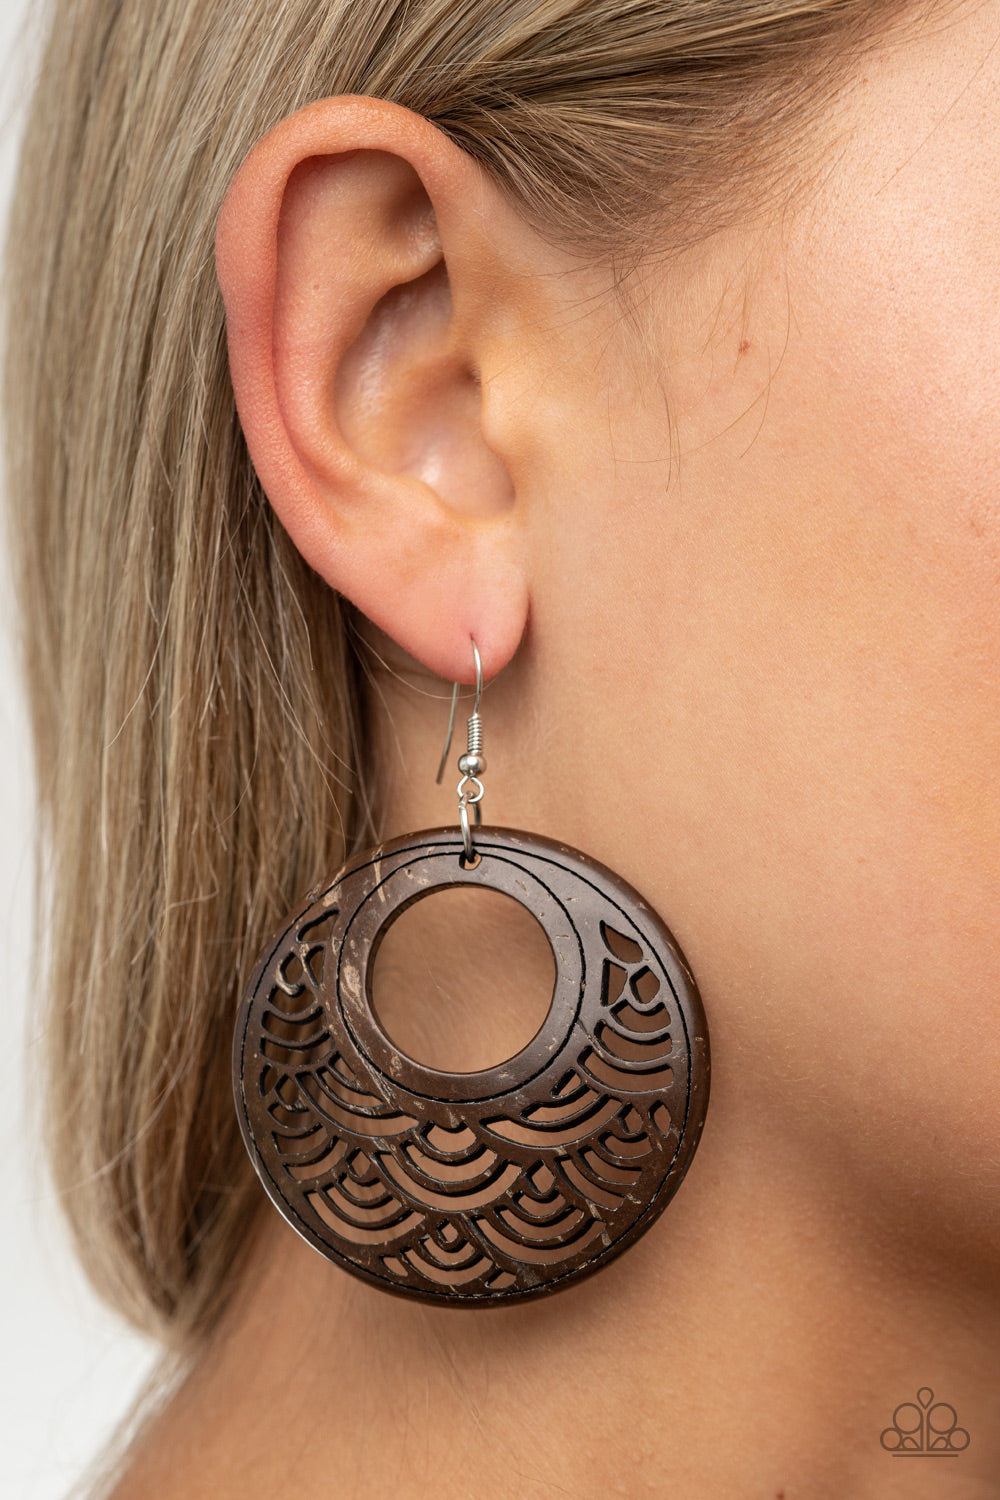 Paparazzi Jewelry & Accessories - Tropical Canopy - Brown Earrings. Bling By Titia Boutique